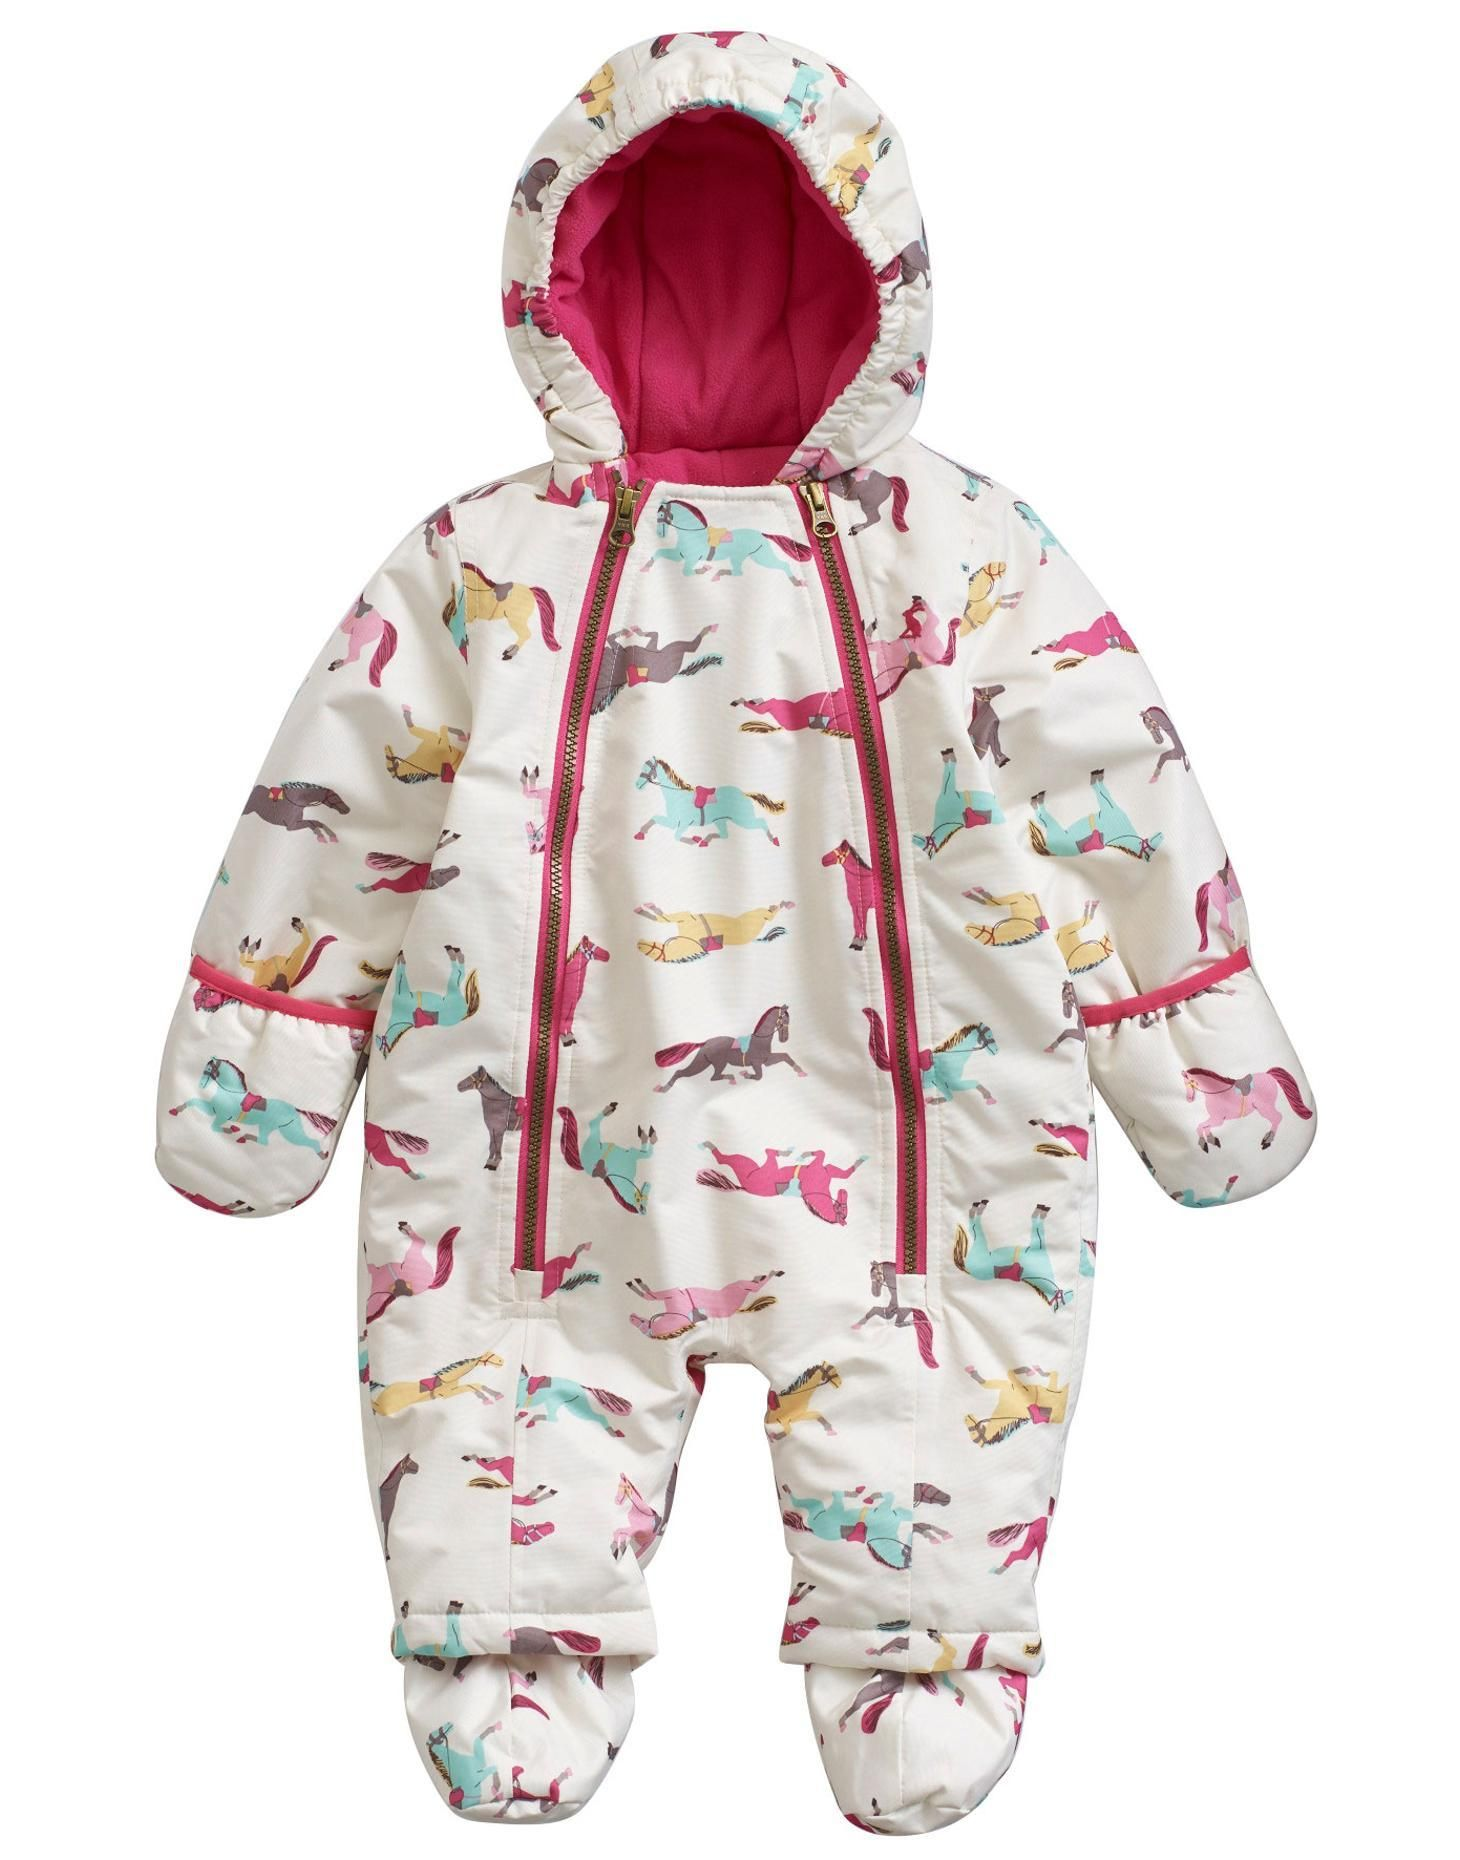 78cdb394e Joules Baby Girls Snow Suit